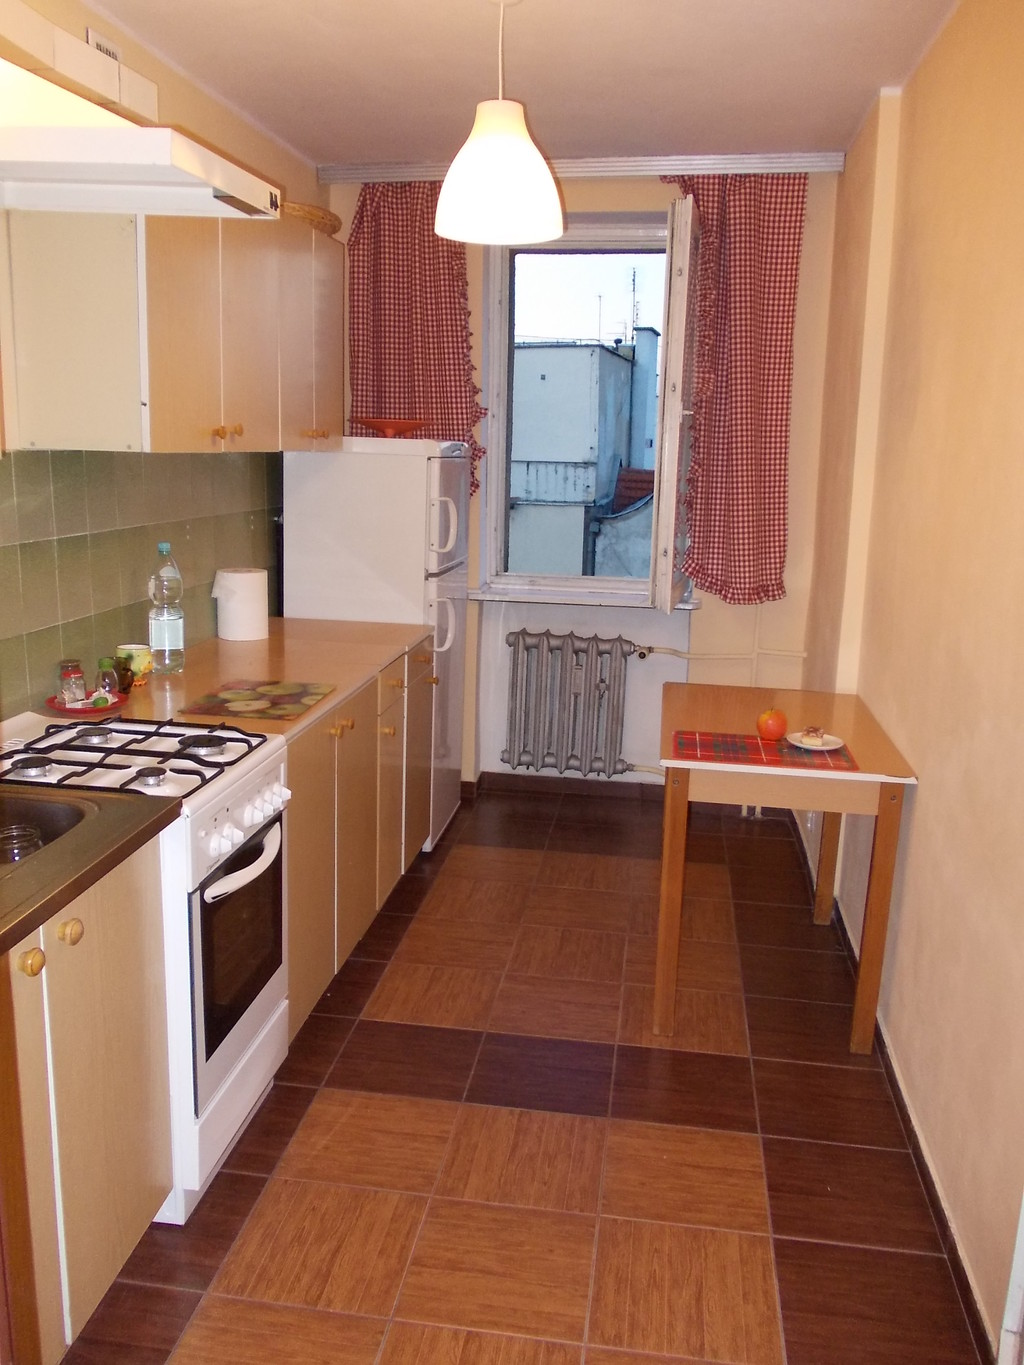 Large Flat In Wroclaw Next To Aquapark And University Of